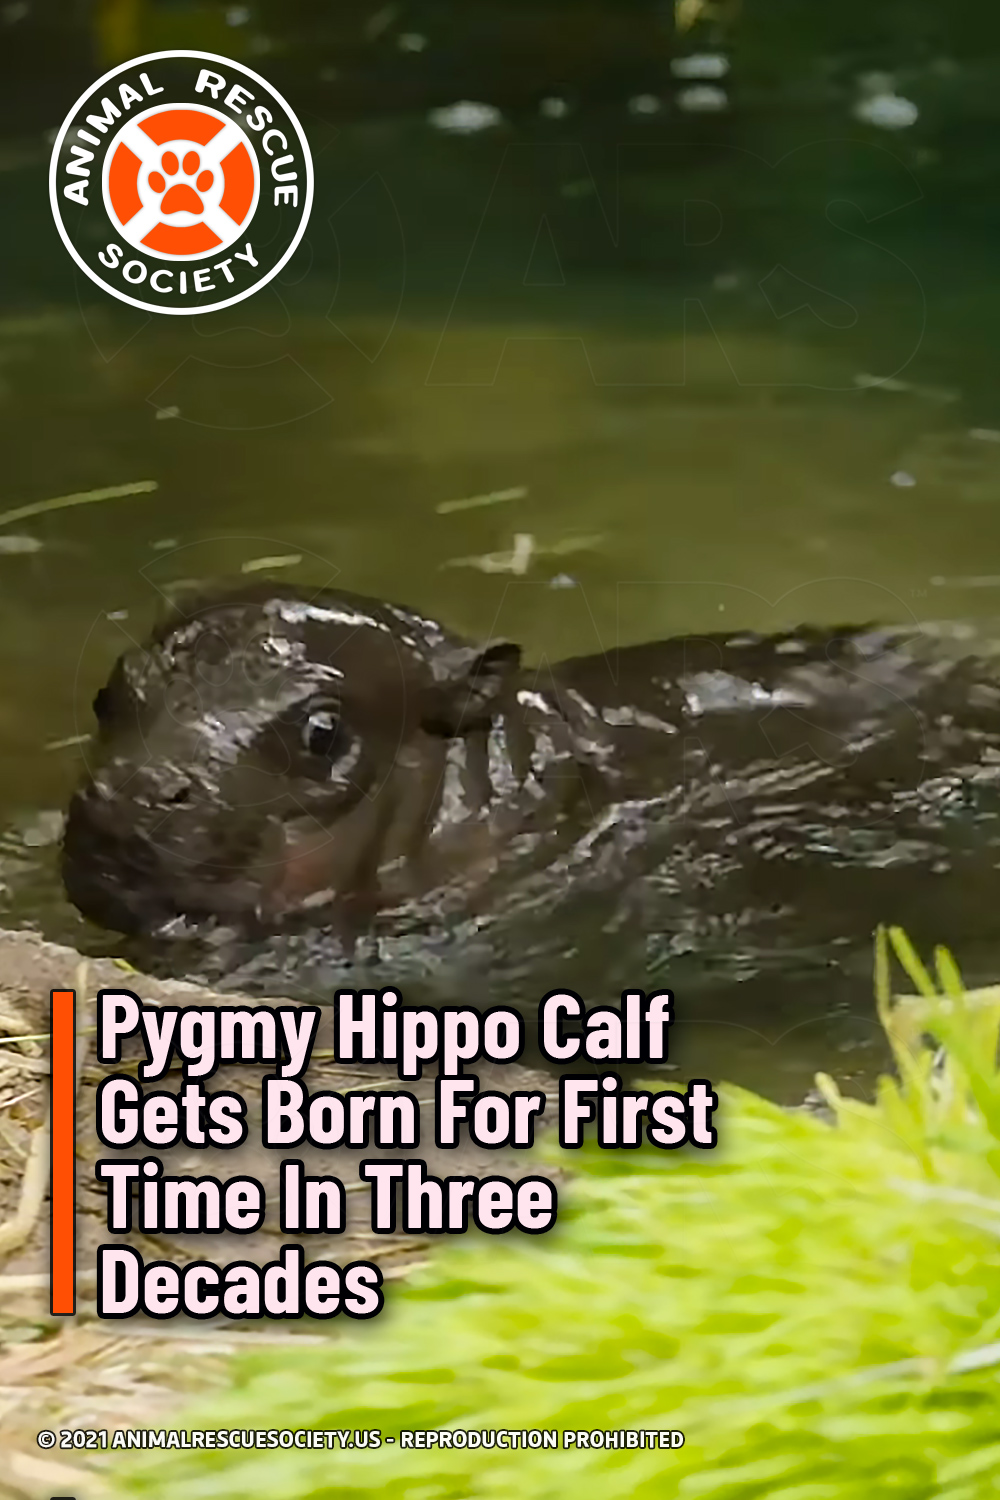 Pygmy Hippo Calf Gets Born For First Time In Three Decades